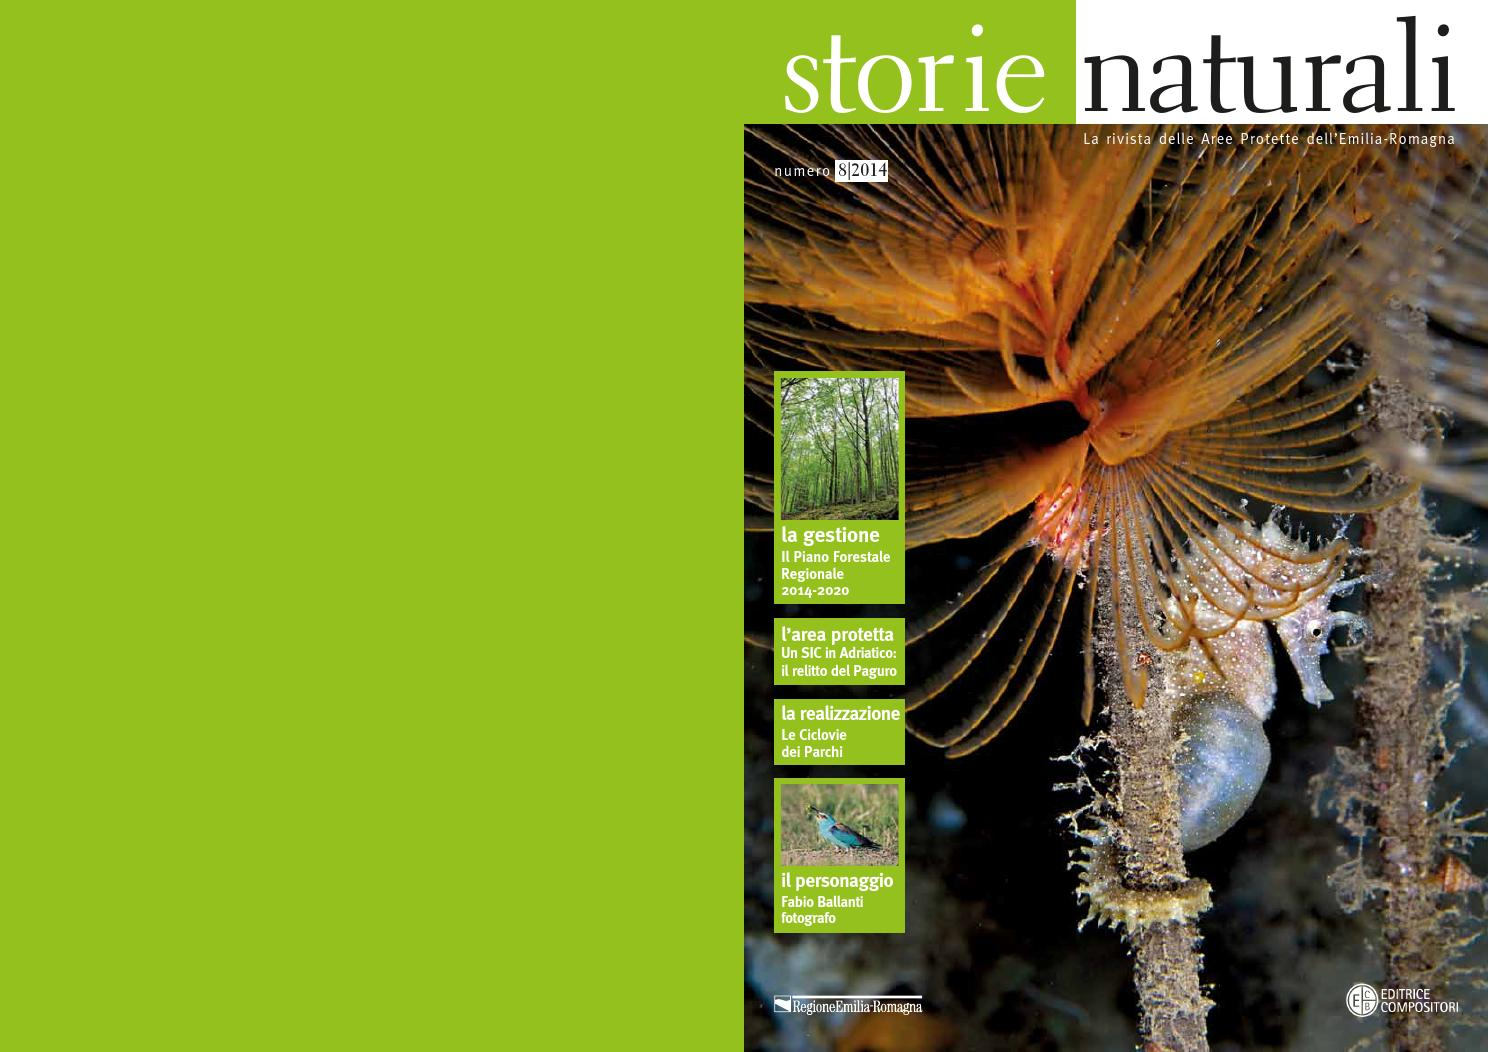 Storie Naturali n.8 2014 by servizio parchi - issuu f3256128a44